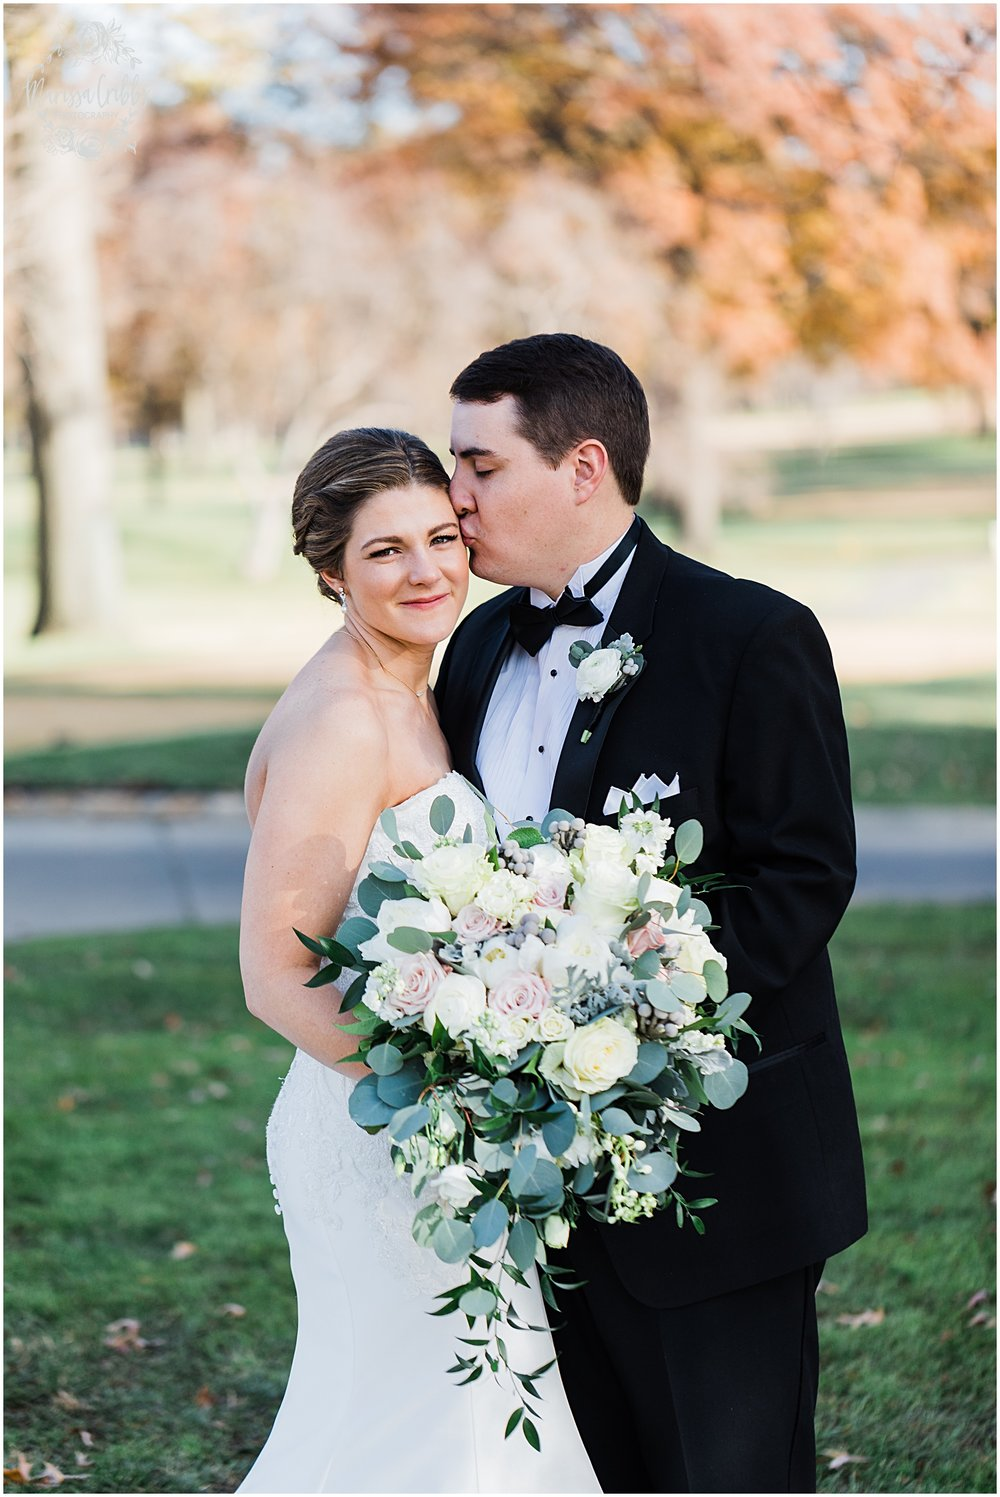 JOE & CAROLINE MARRIED | INDIAN HILLS COUNTRY CLUB | MARISSA CRIBBS PHOTOGRAPHY_7197.jpg